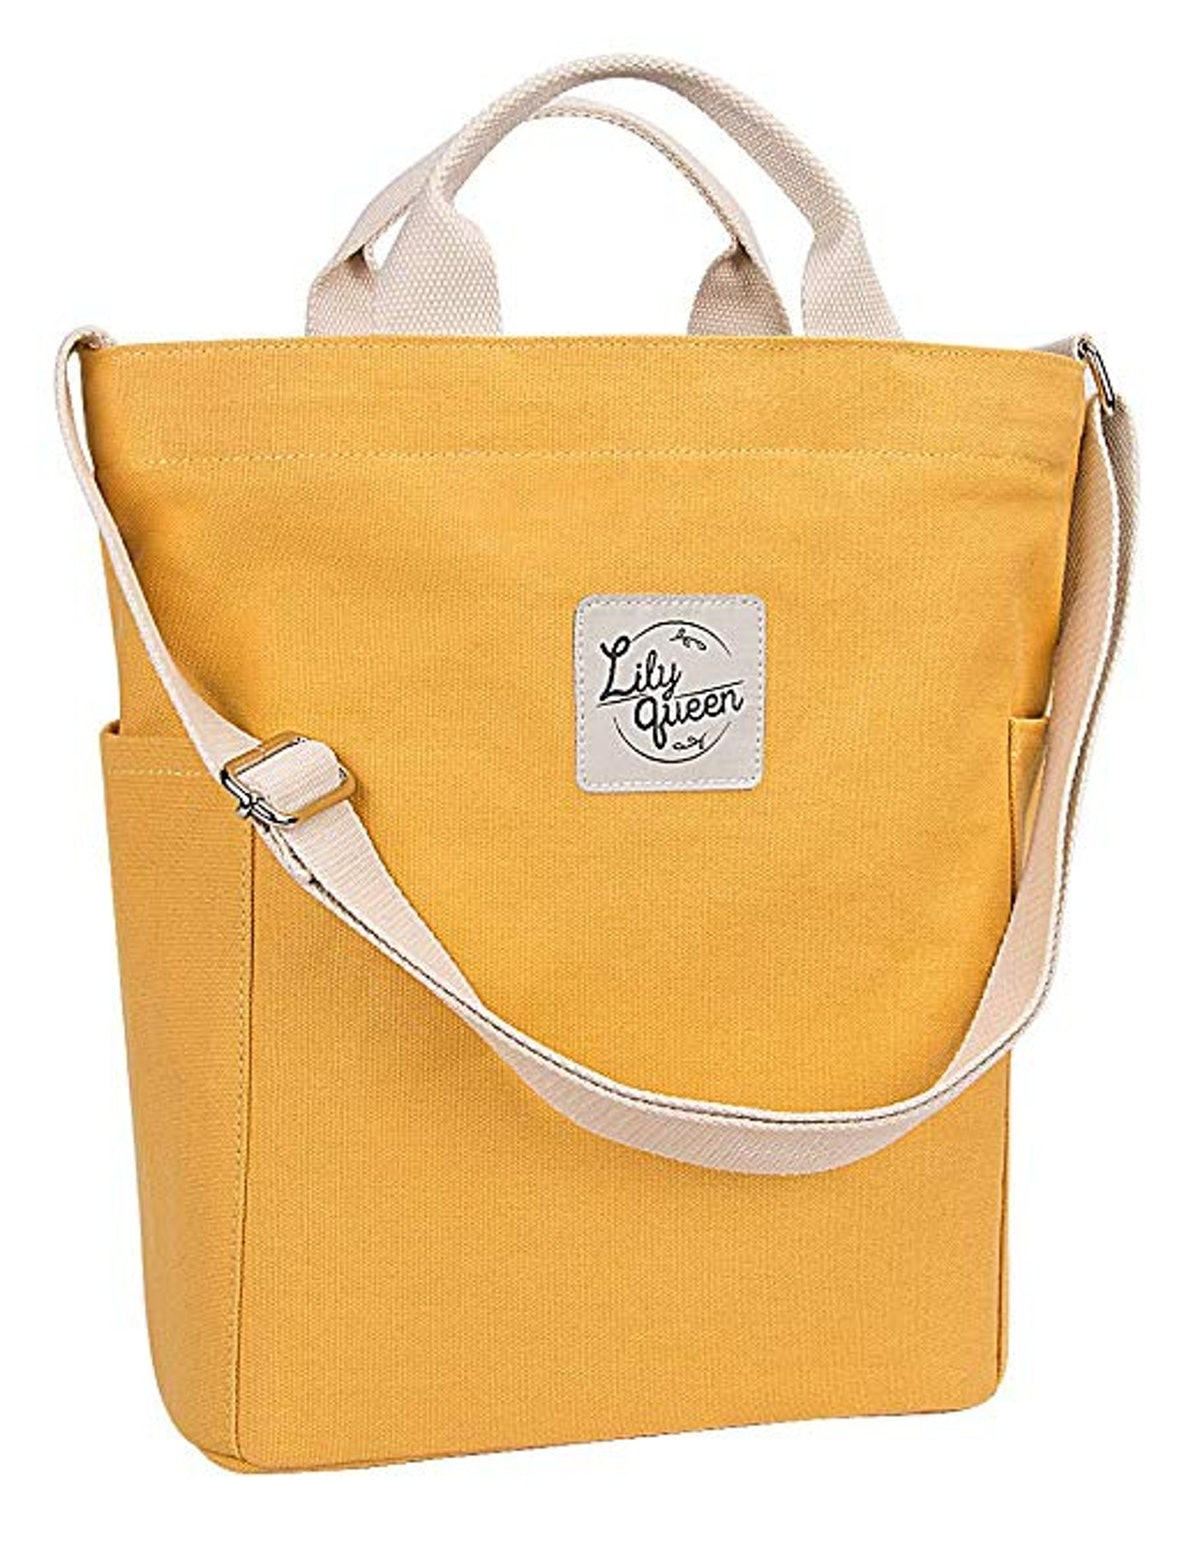 Lily Queen Canvas Tote